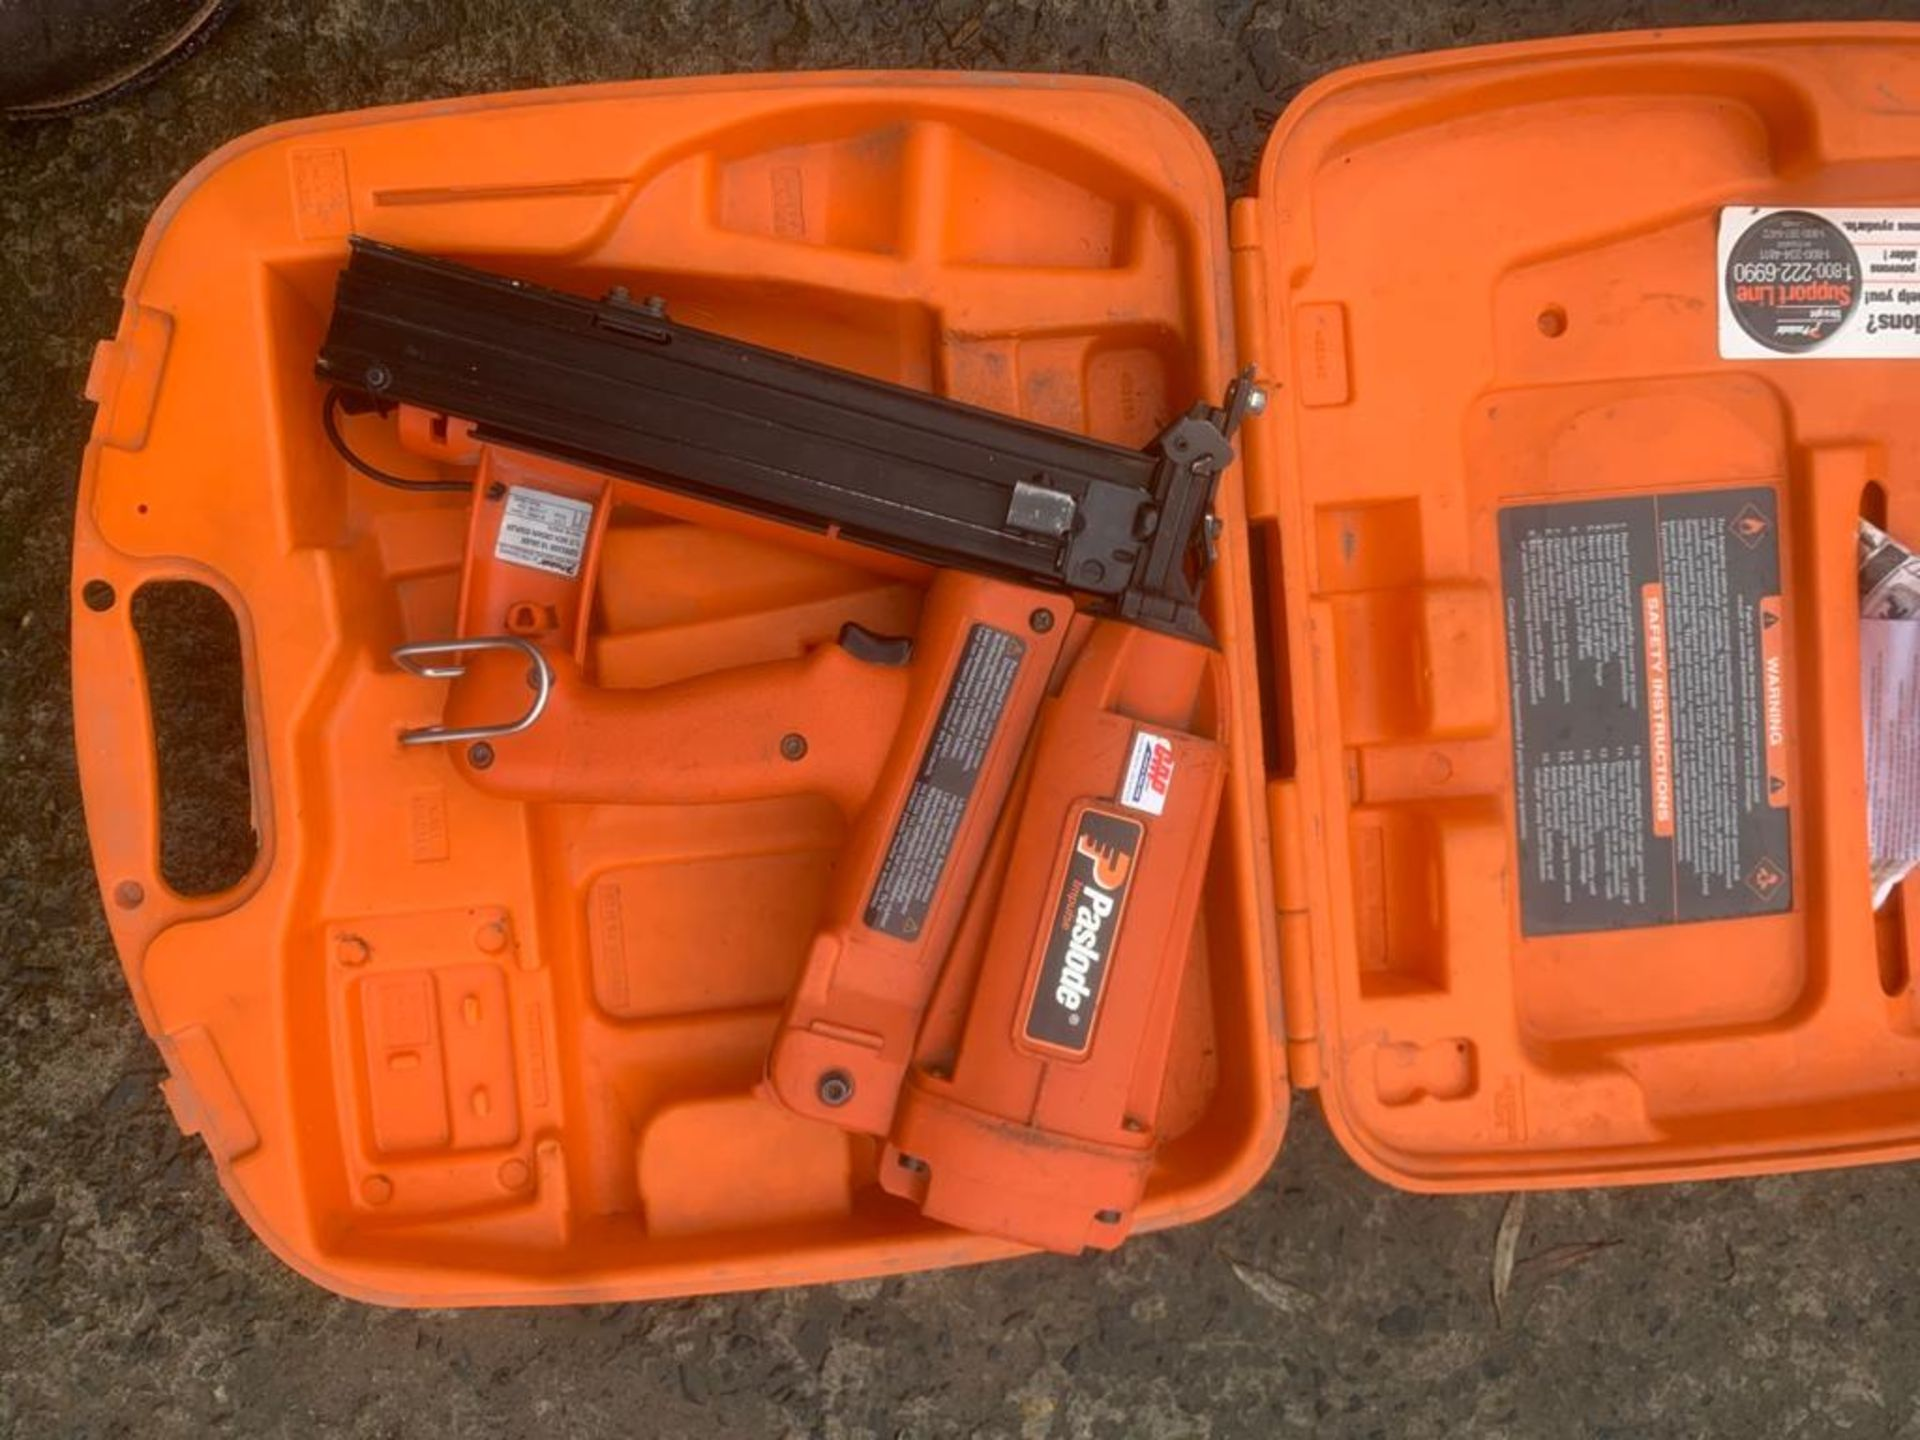 PASLODE FINISHING NAIL GUN UNTESTED, UK NATIONWIDE DELIVERY £10 *PLUS VAT* - Image 2 of 2